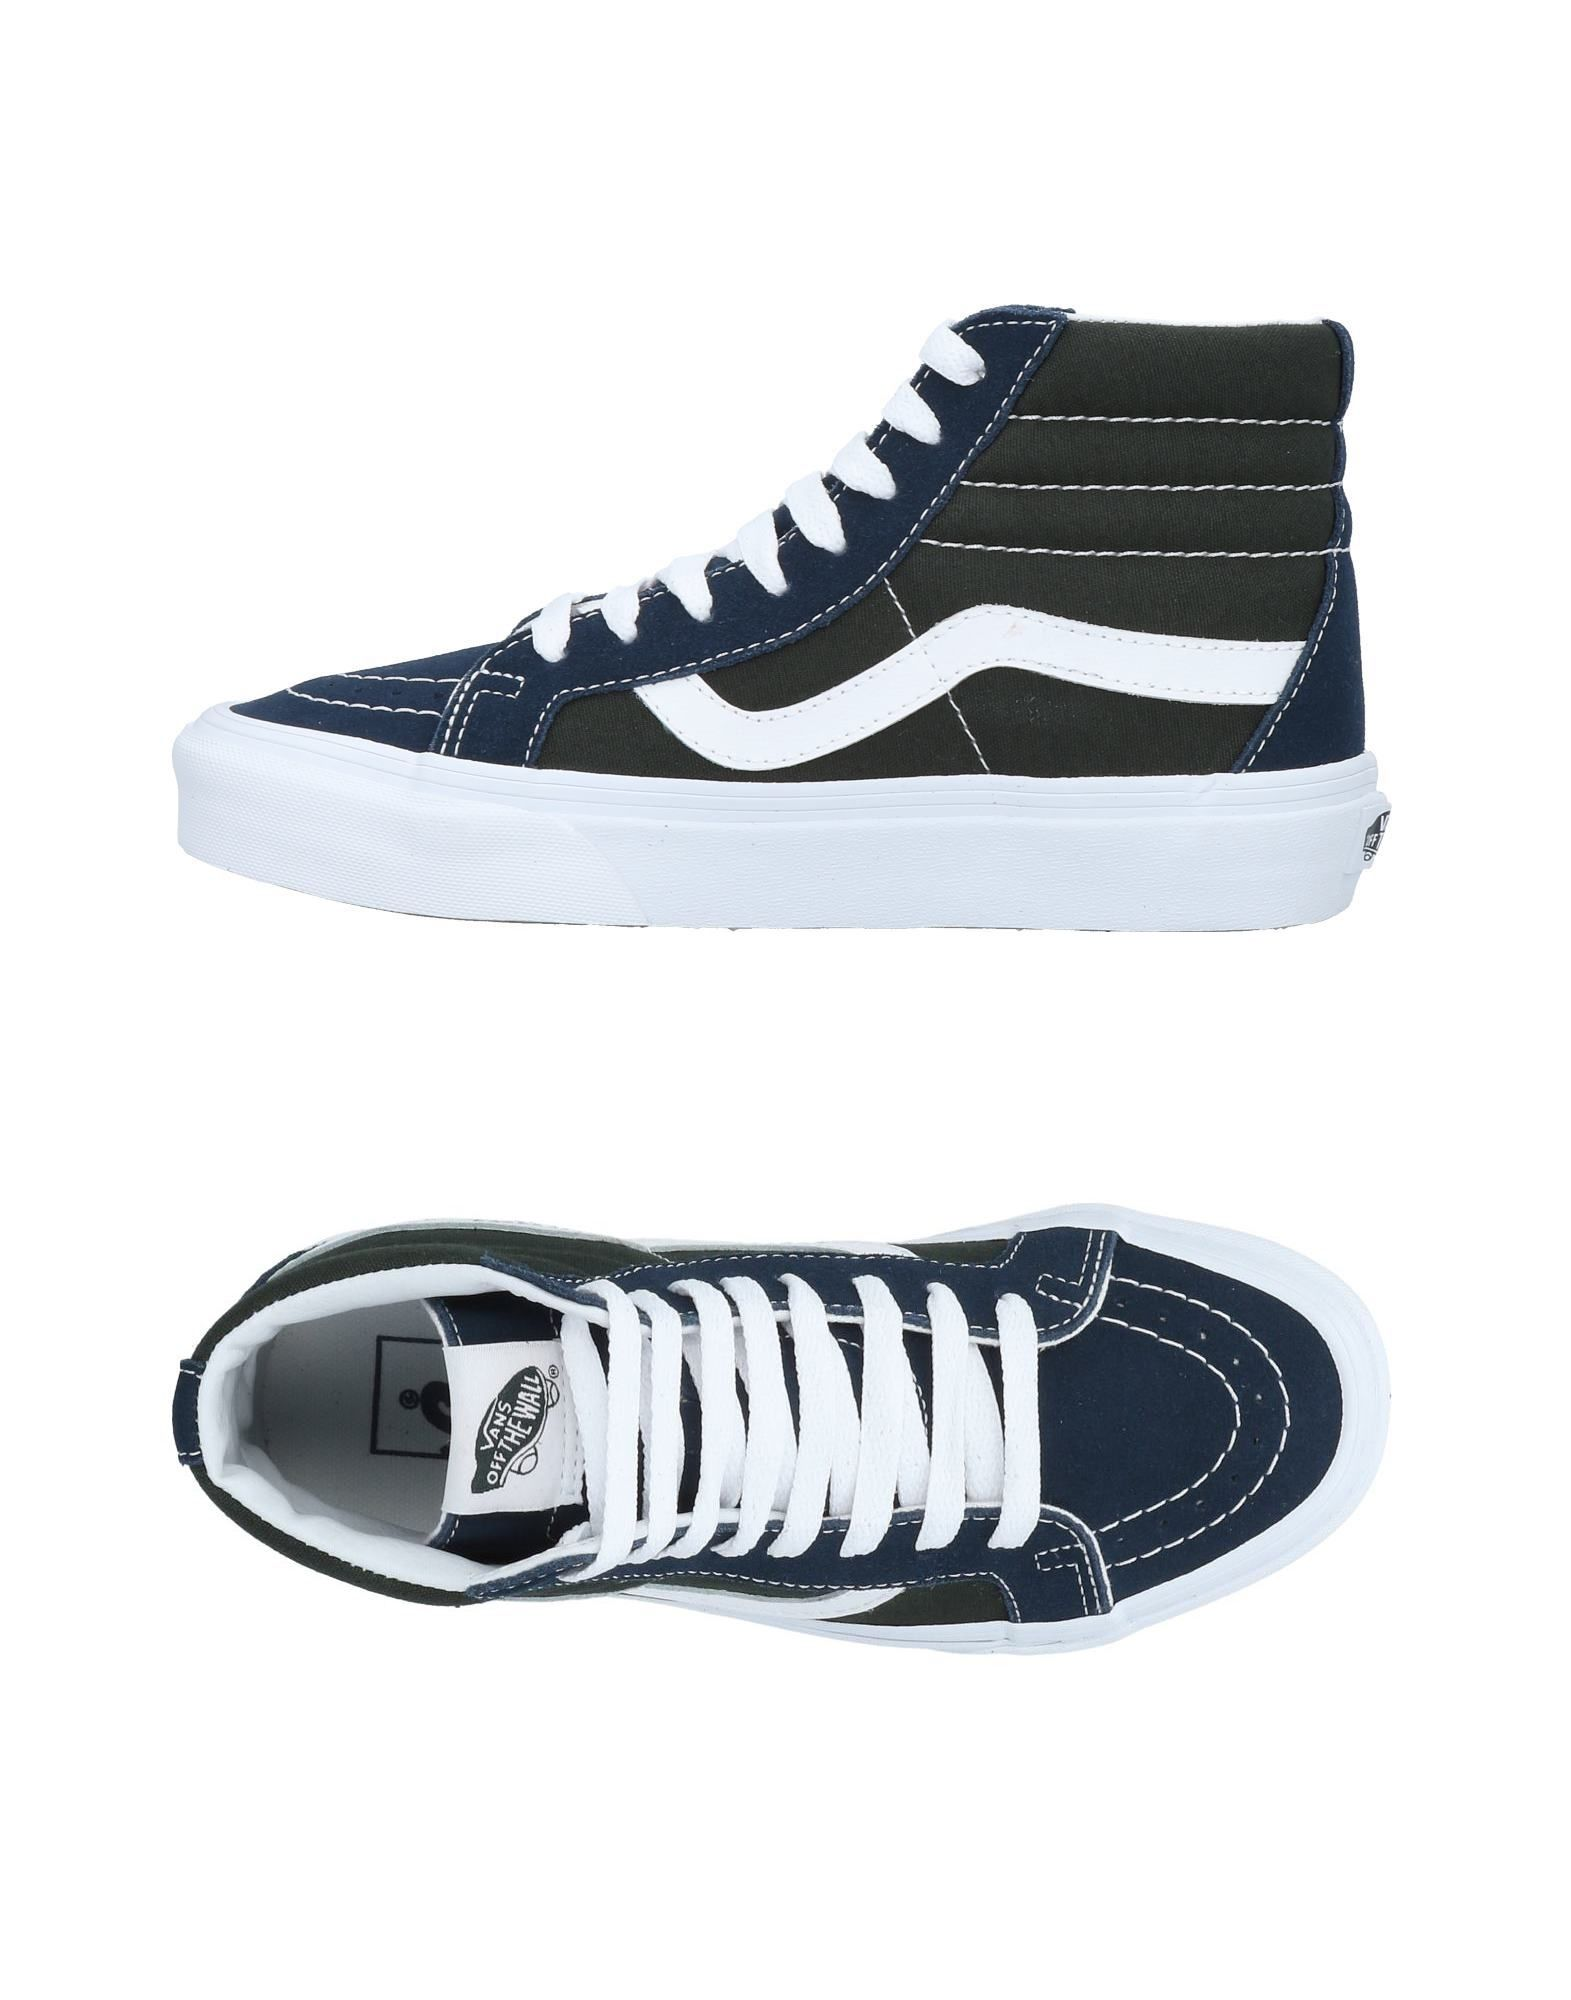 Sneakers Vans Donna - 11491915AS Scarpe economiche e buone